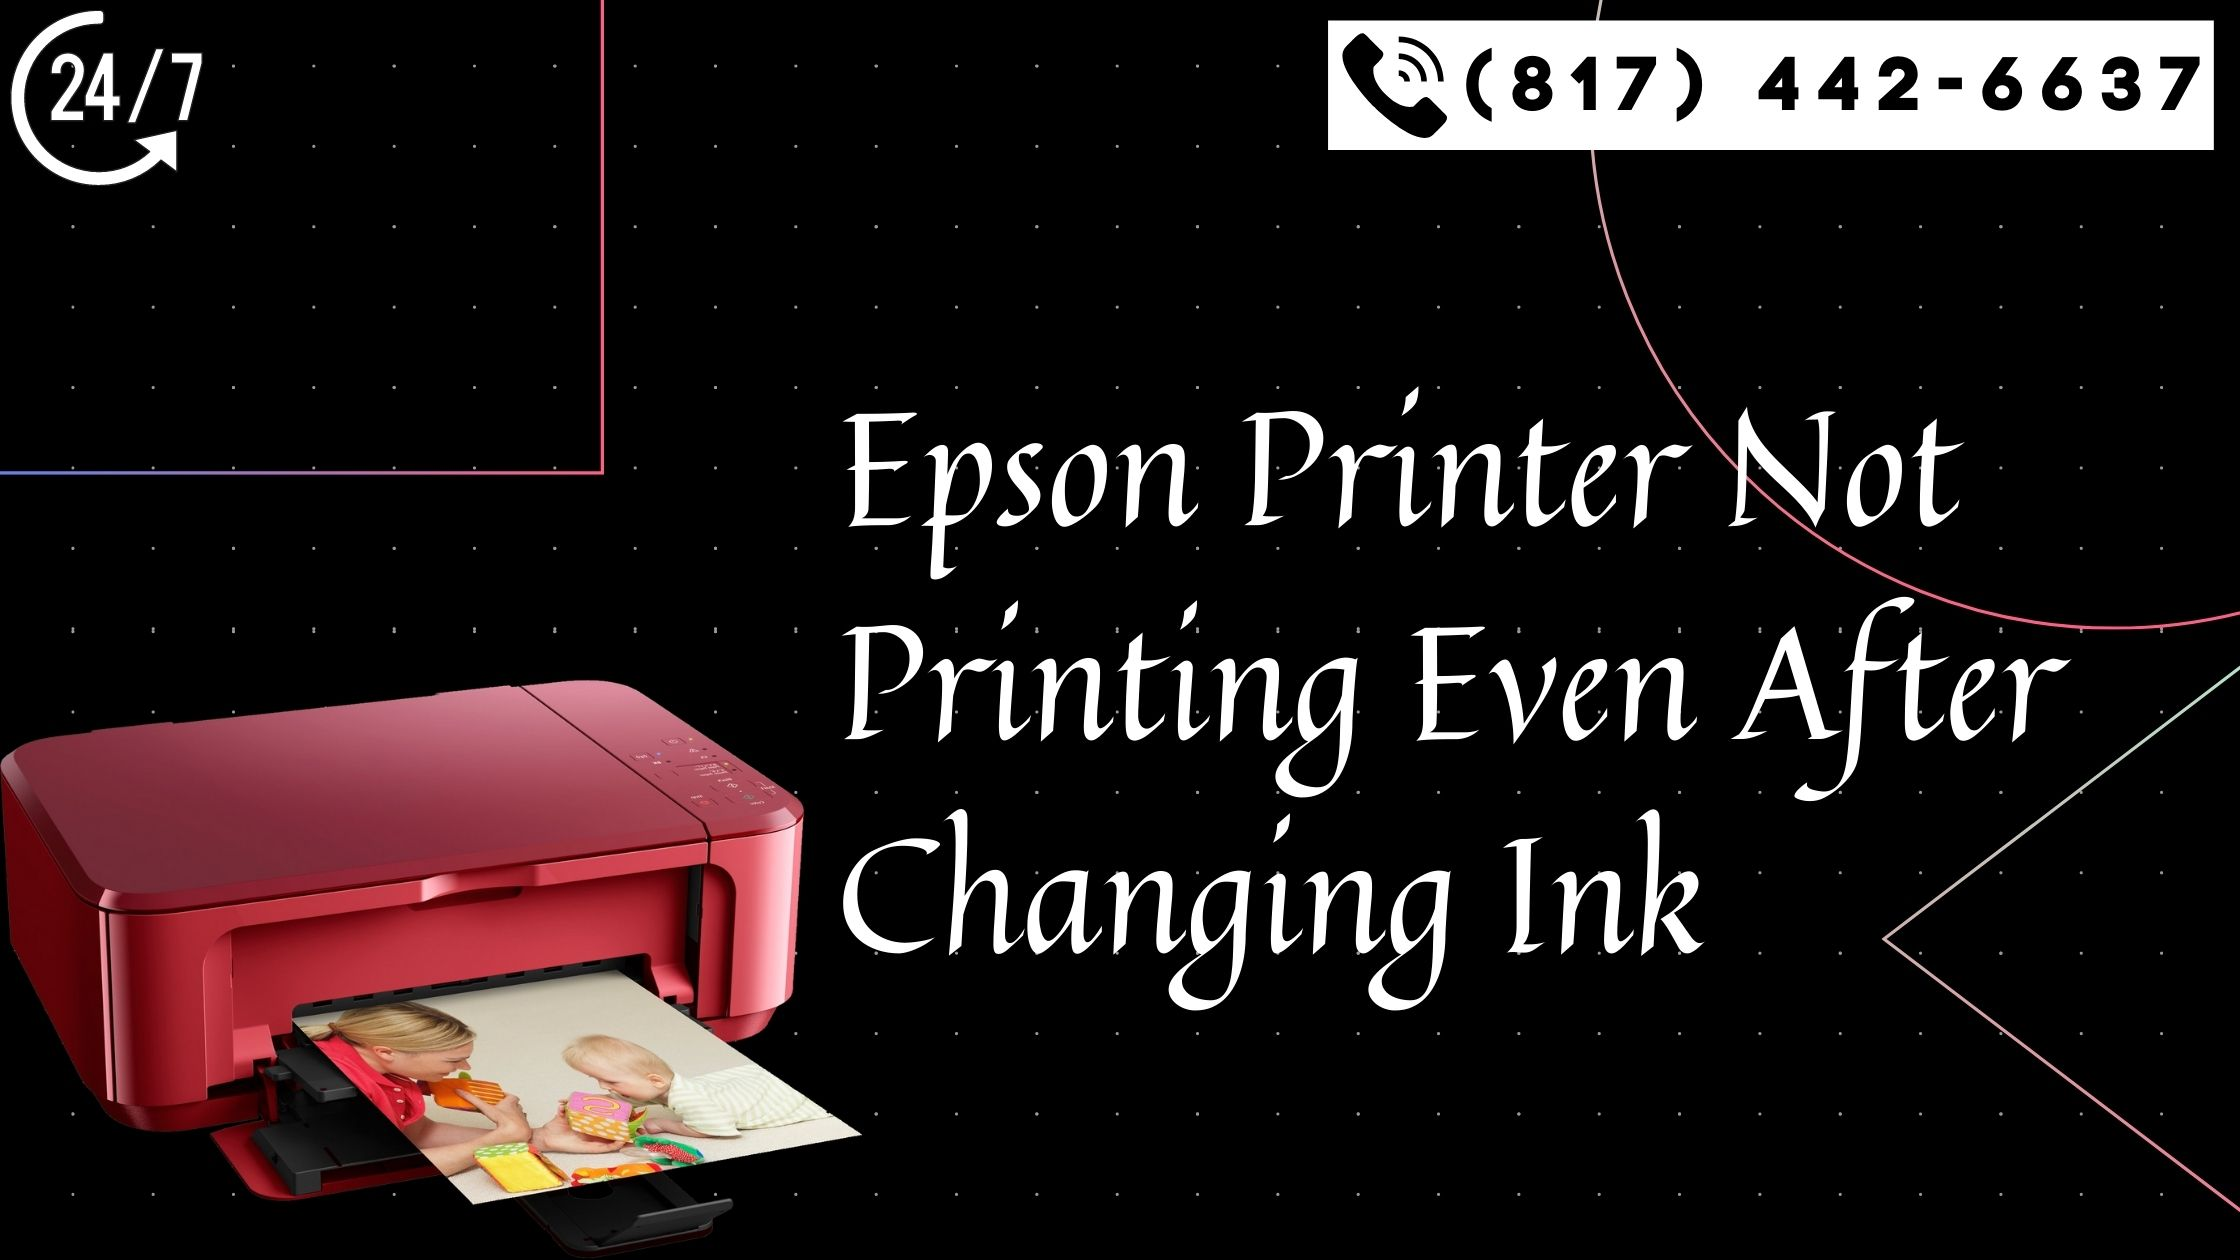 Epson printer not printing after changing ink